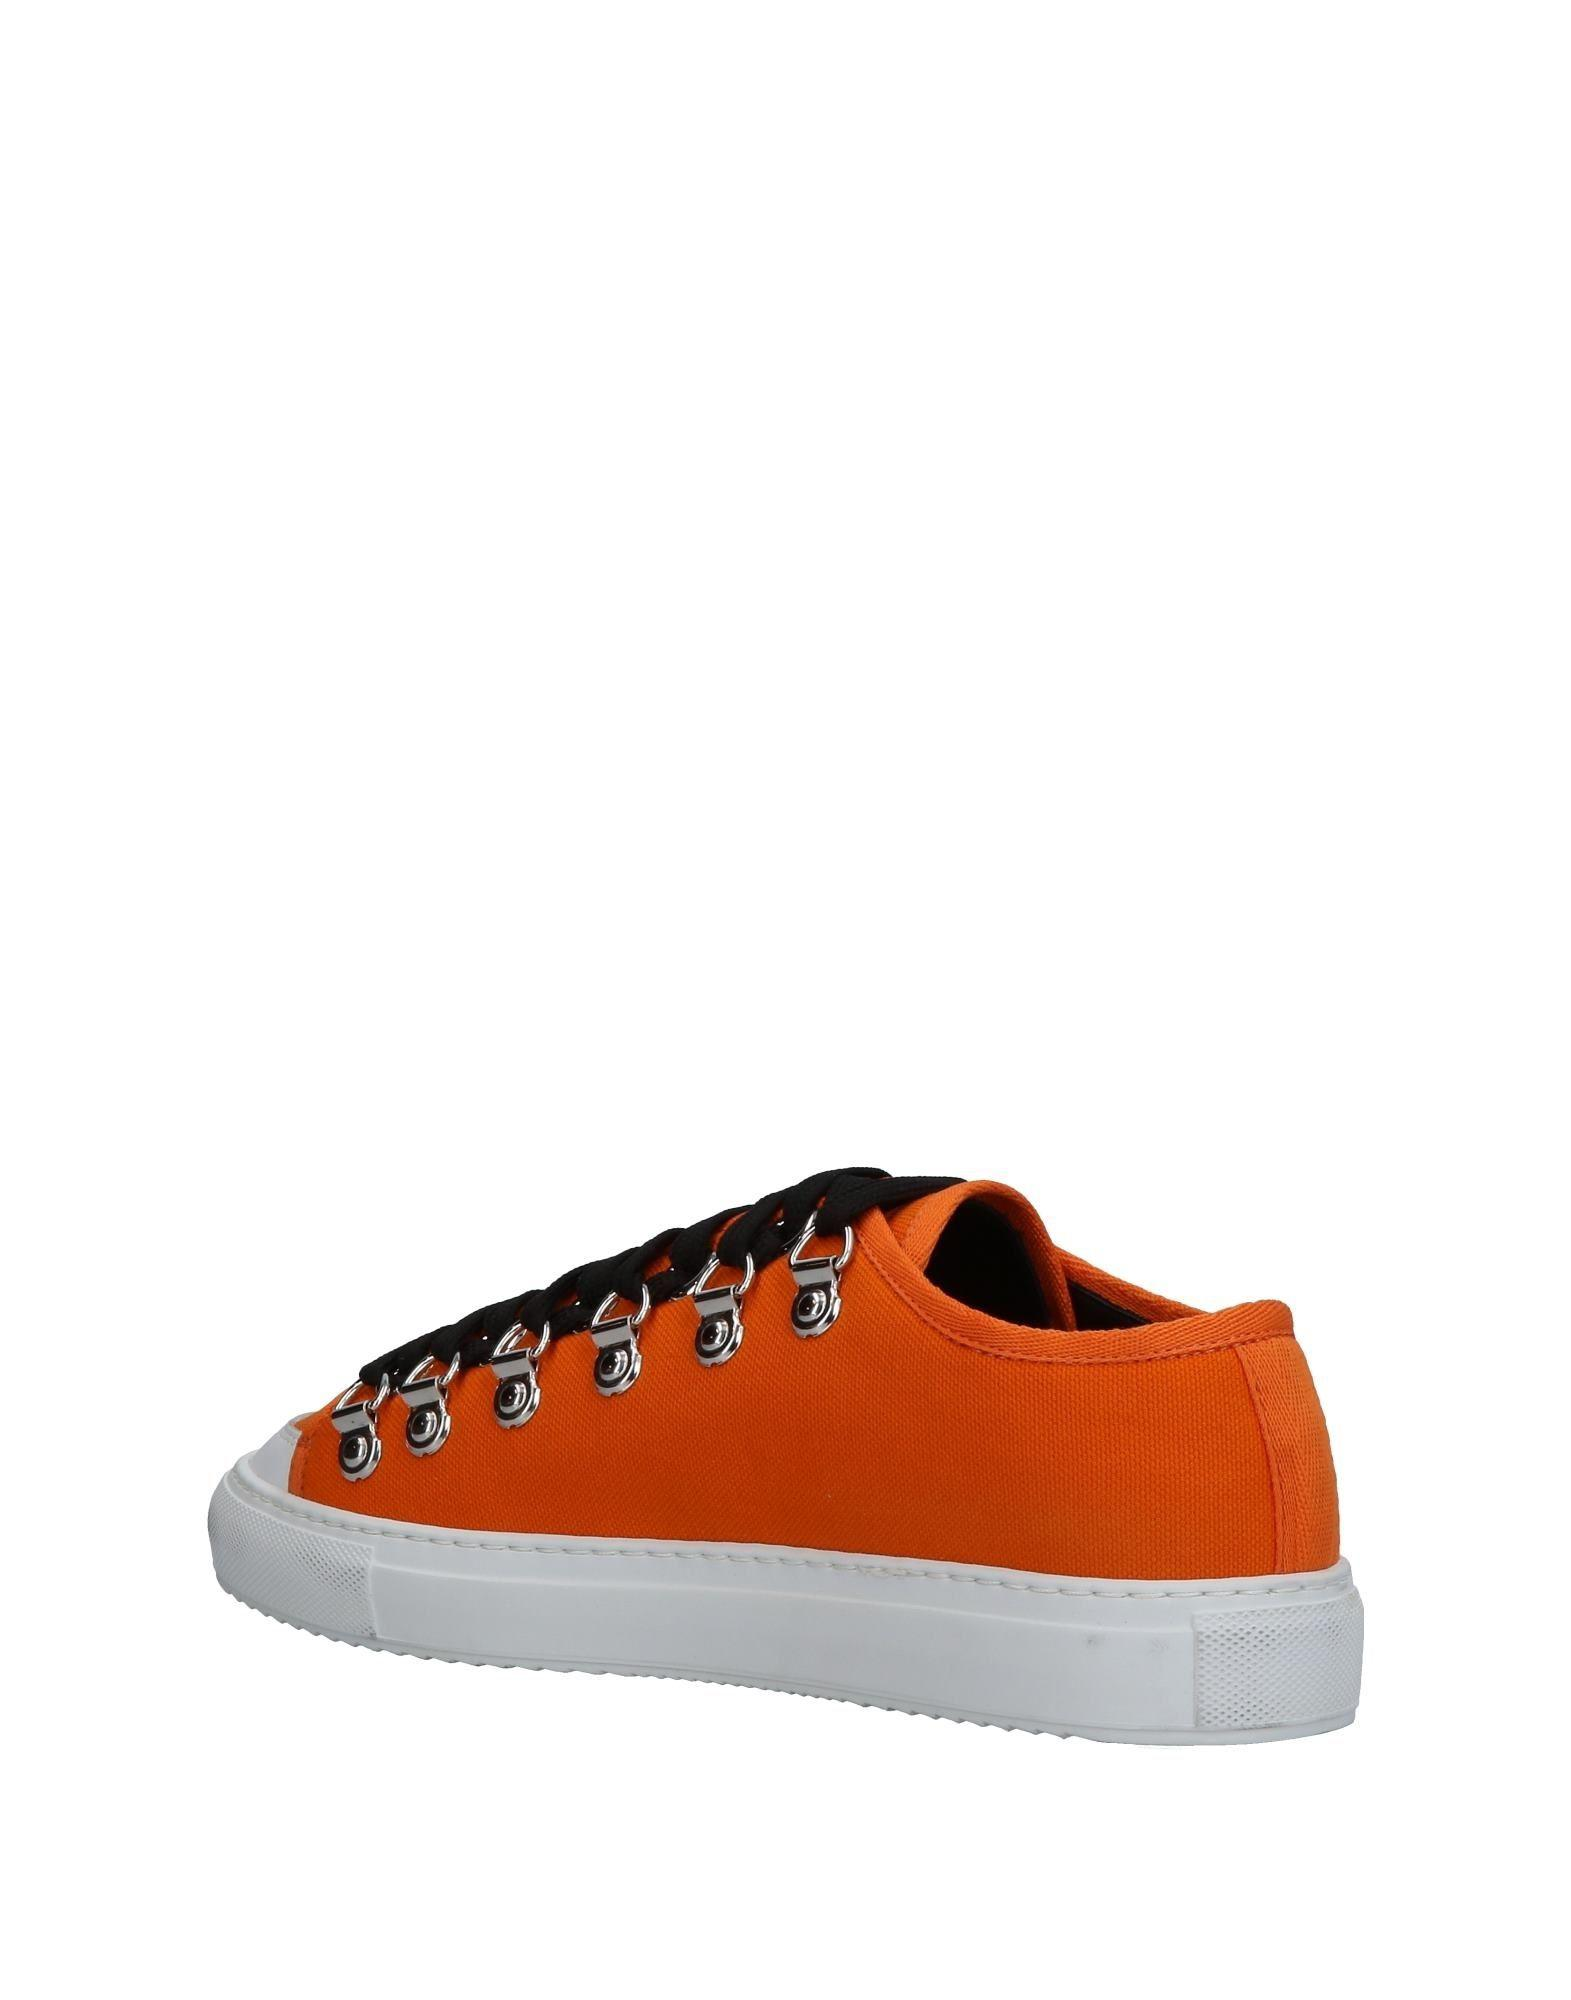 JW Anderson Canvas Low-tops & Sneakers in Orange